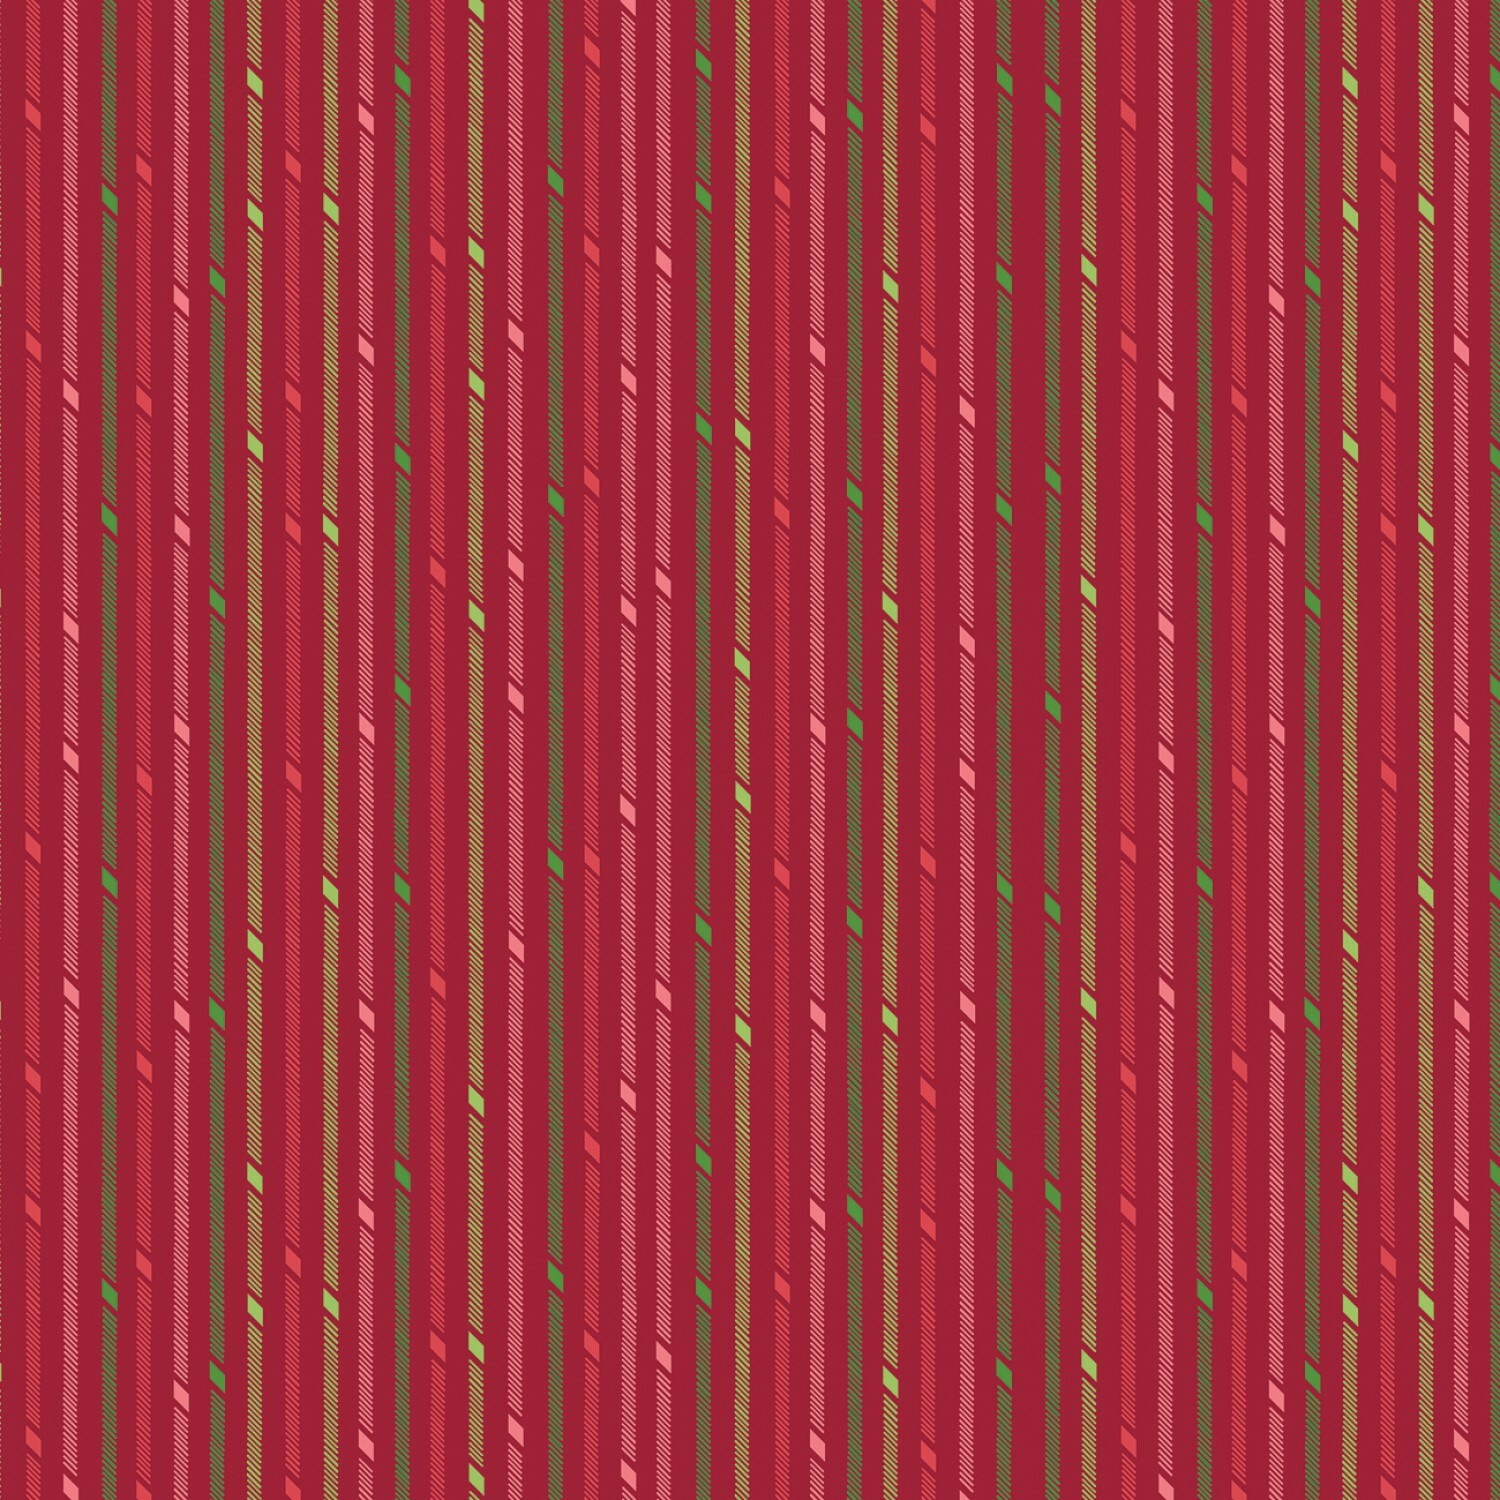 Red Candy Stripe - Better Not Pout by Nancy Halvorsen - 1/2m cut 55879